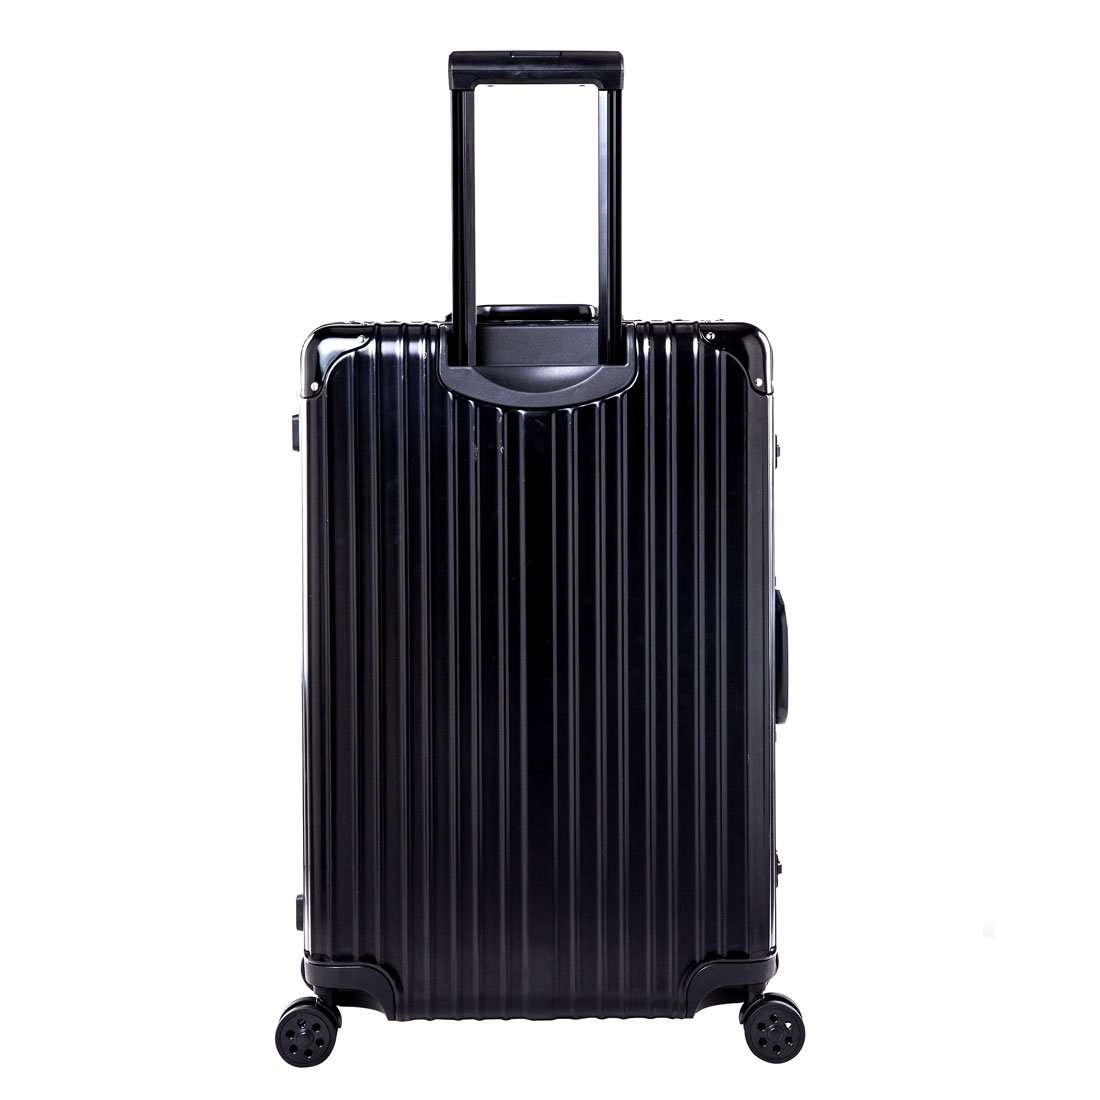 Expandable Spinner Hard Shell Suitcase Lightweight Carry On Luggage (22 inch, black)